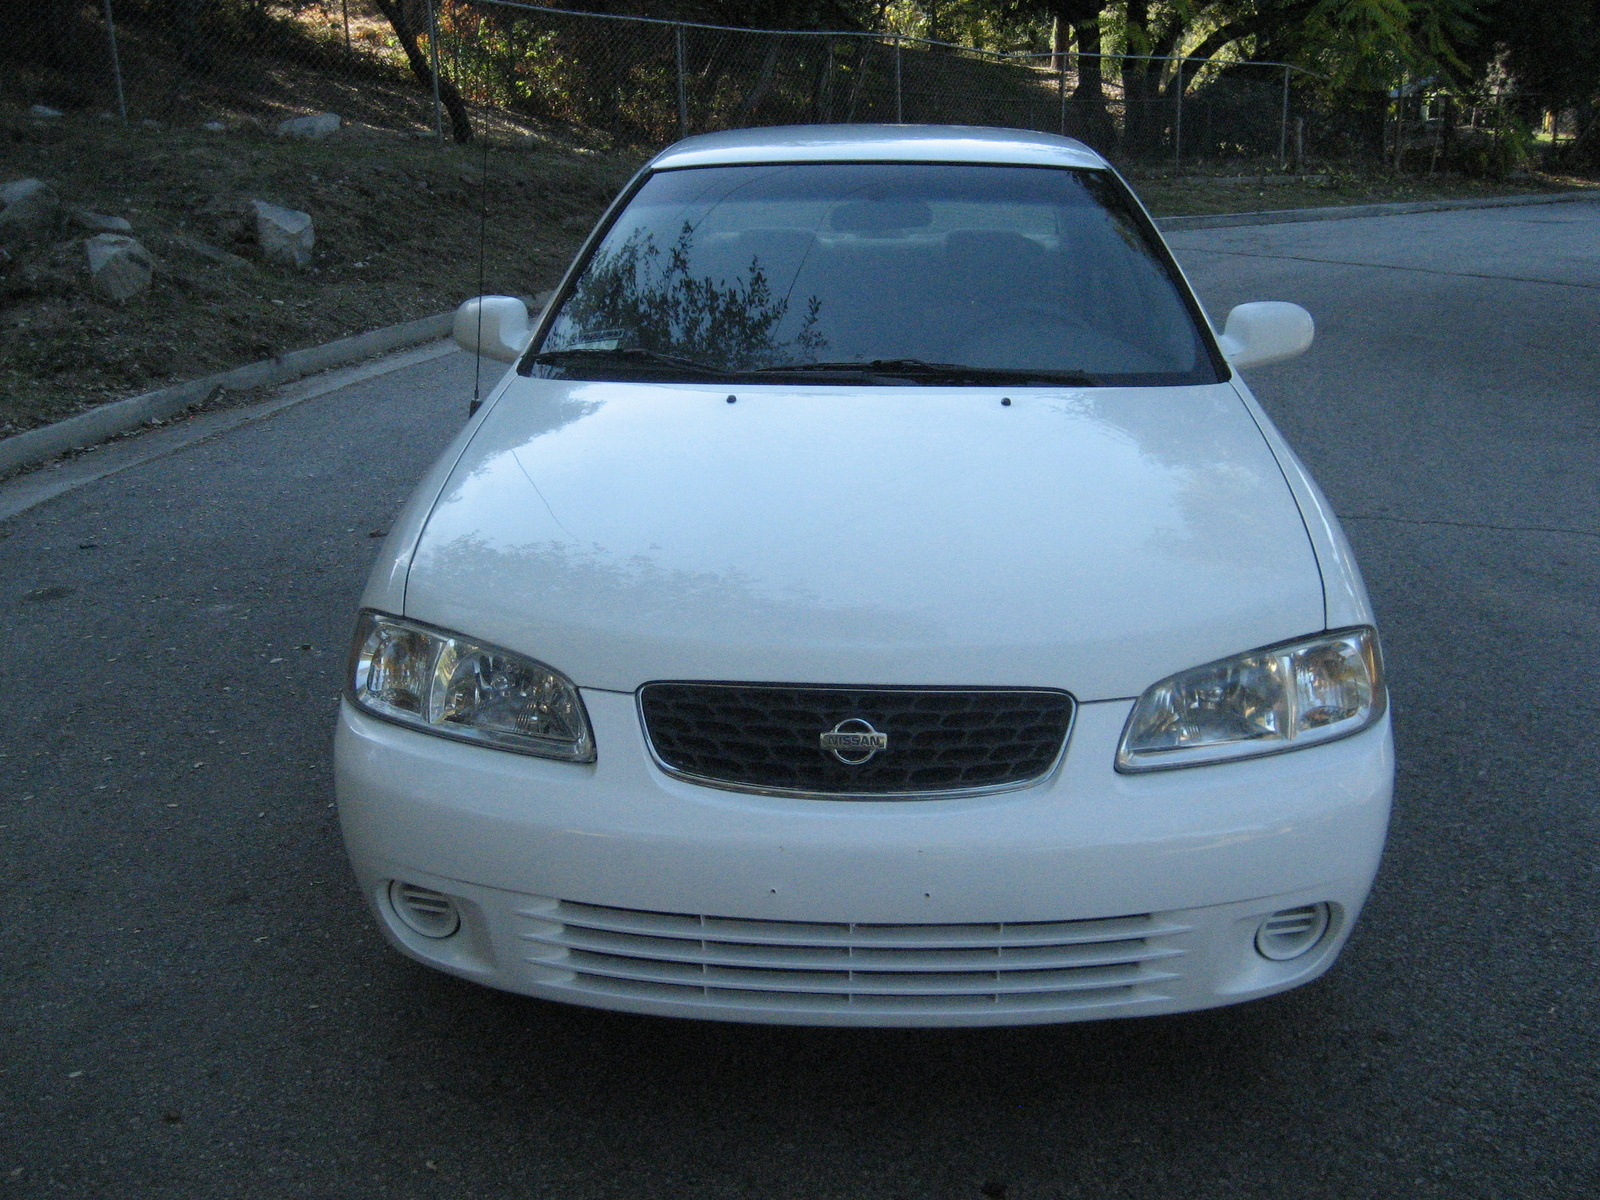 2001 Nissan Altima Gxe >> 2002 Nissan Sentra - Pictures - CarGurus